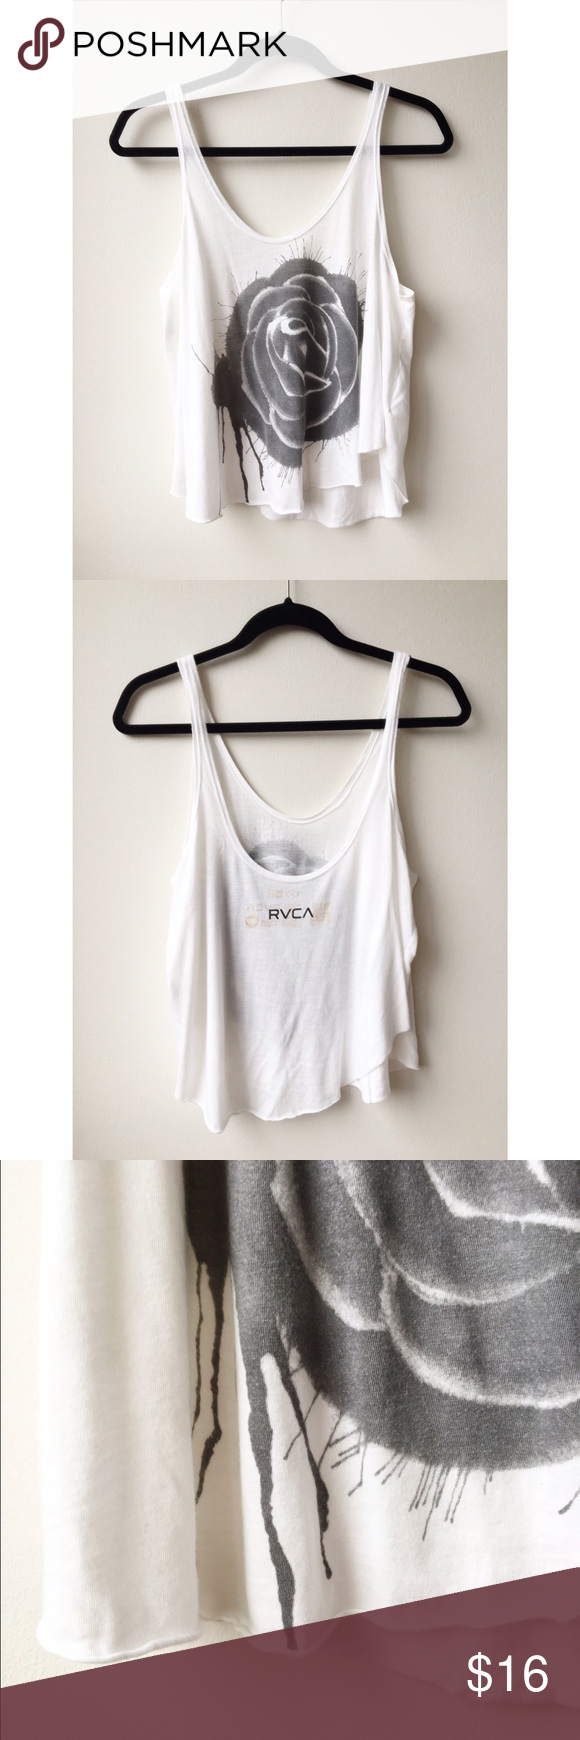 RVCA Tank EUC! No trades or PP. Offers are welcome through the offer button feature. RVCA Tops Tank Tops